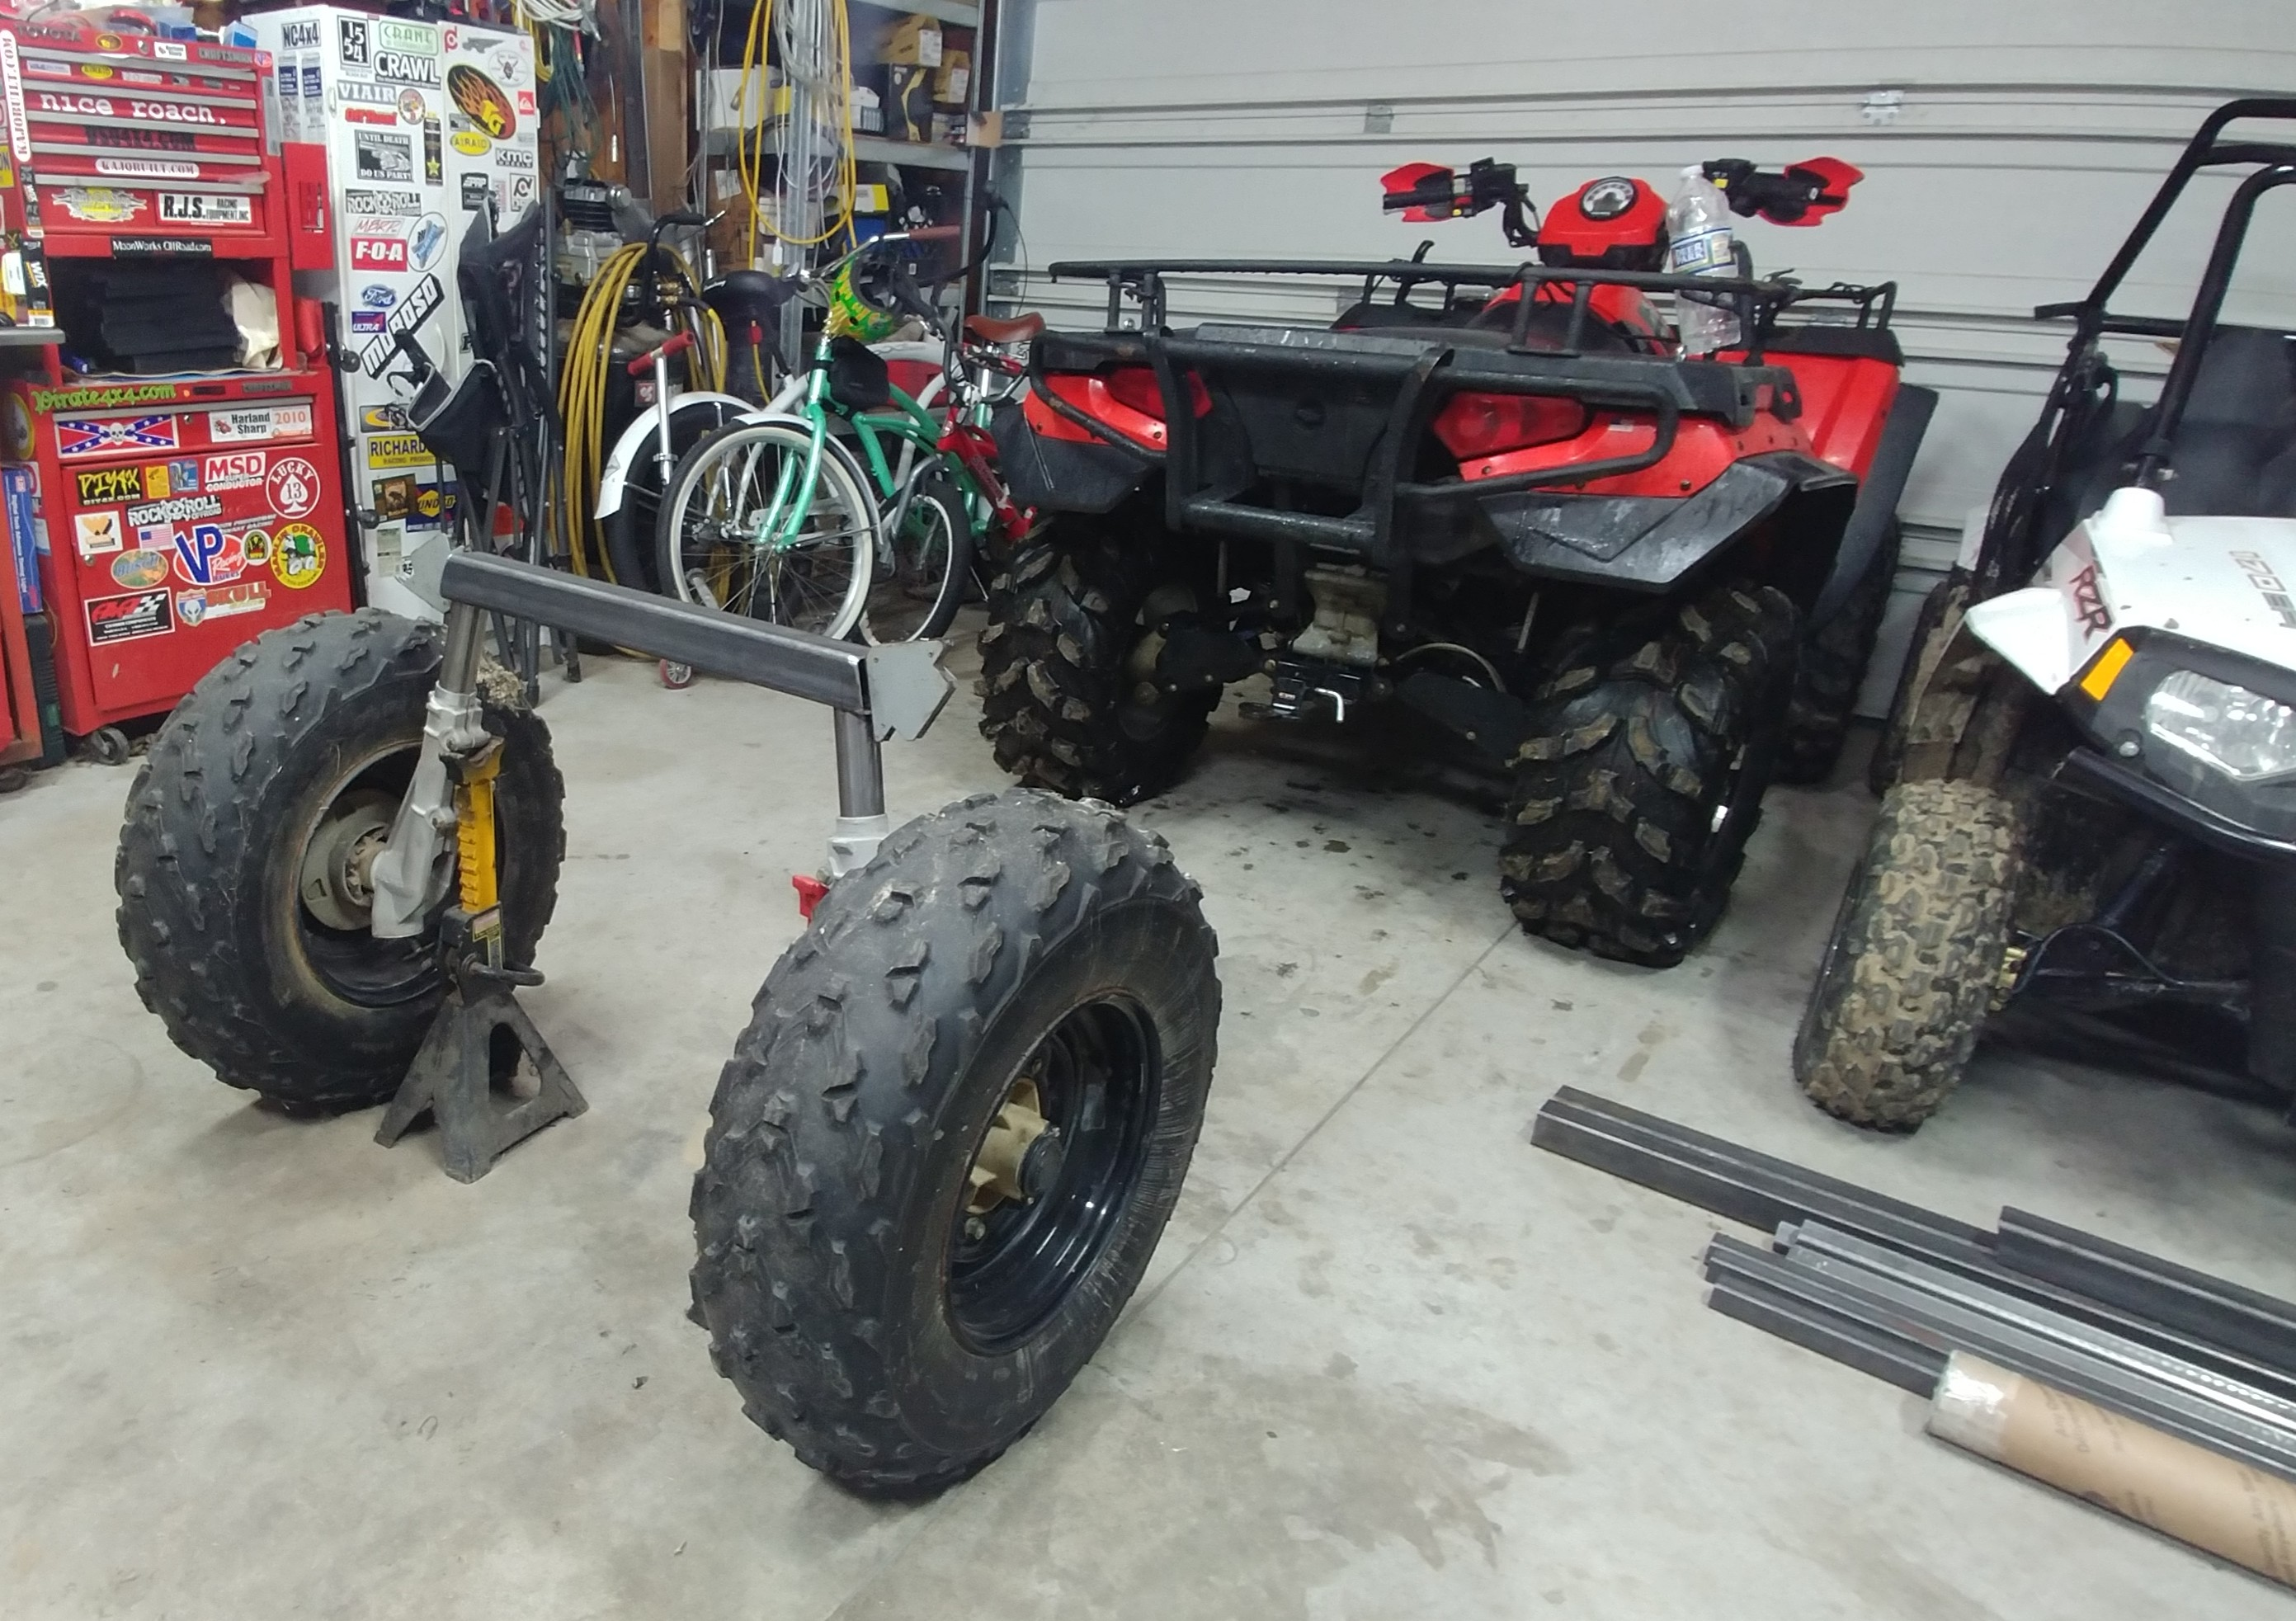 Off-road Trailer Build Using Polaris parts-1121181644a-edited.jpg